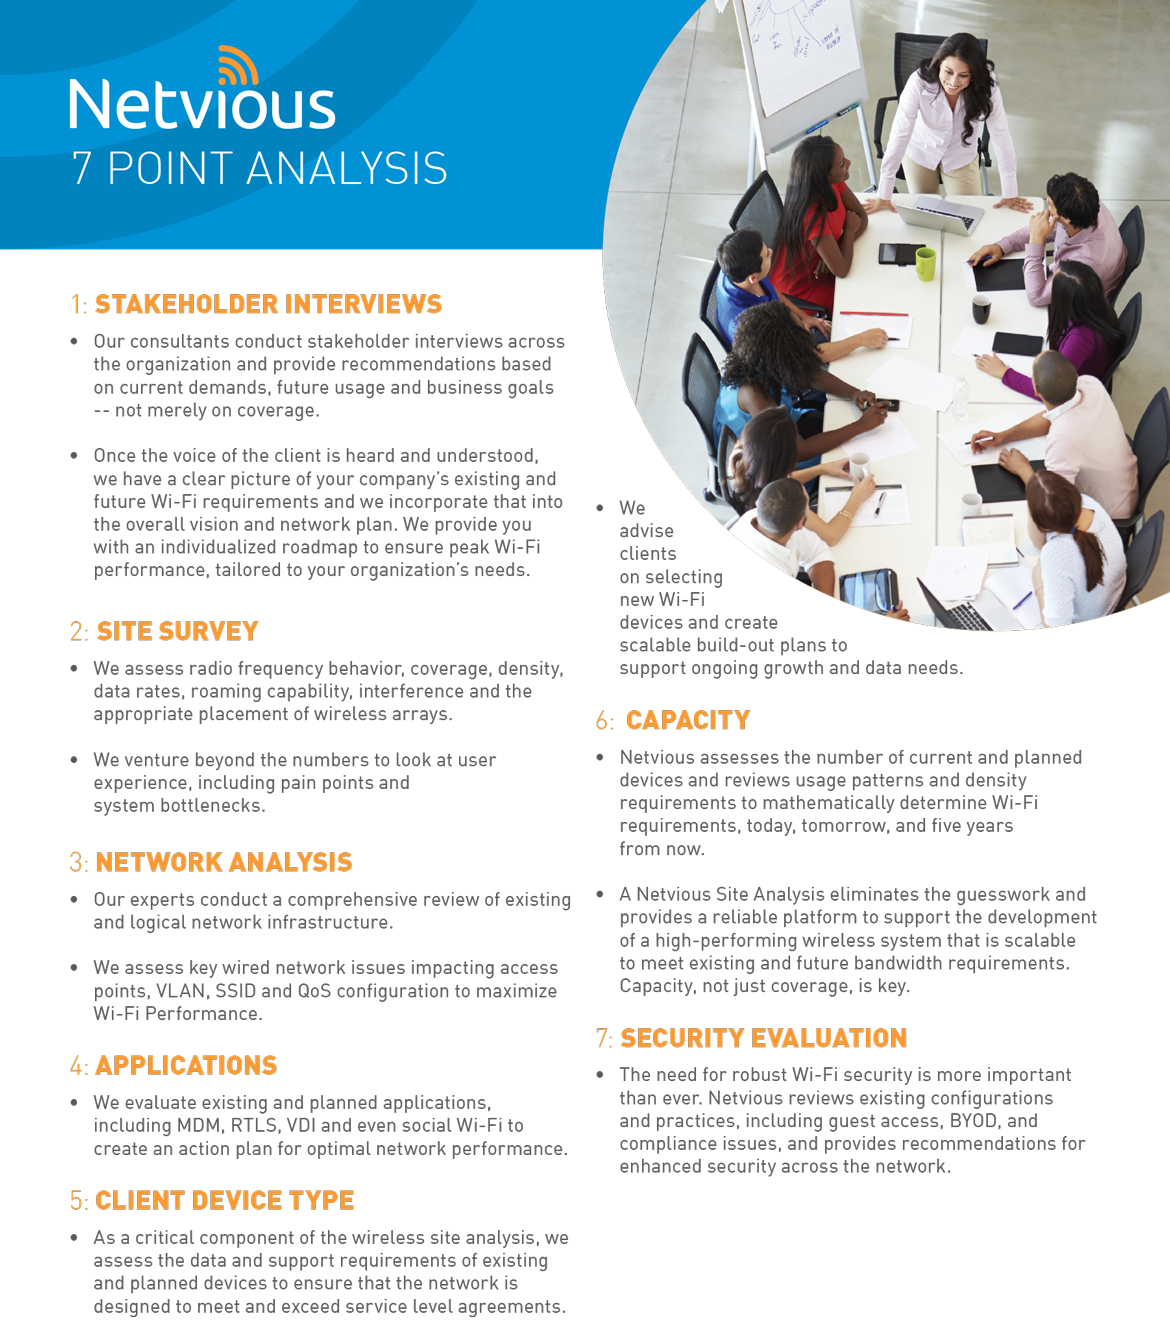 Netvious-SiteAnalysis-flyer-2